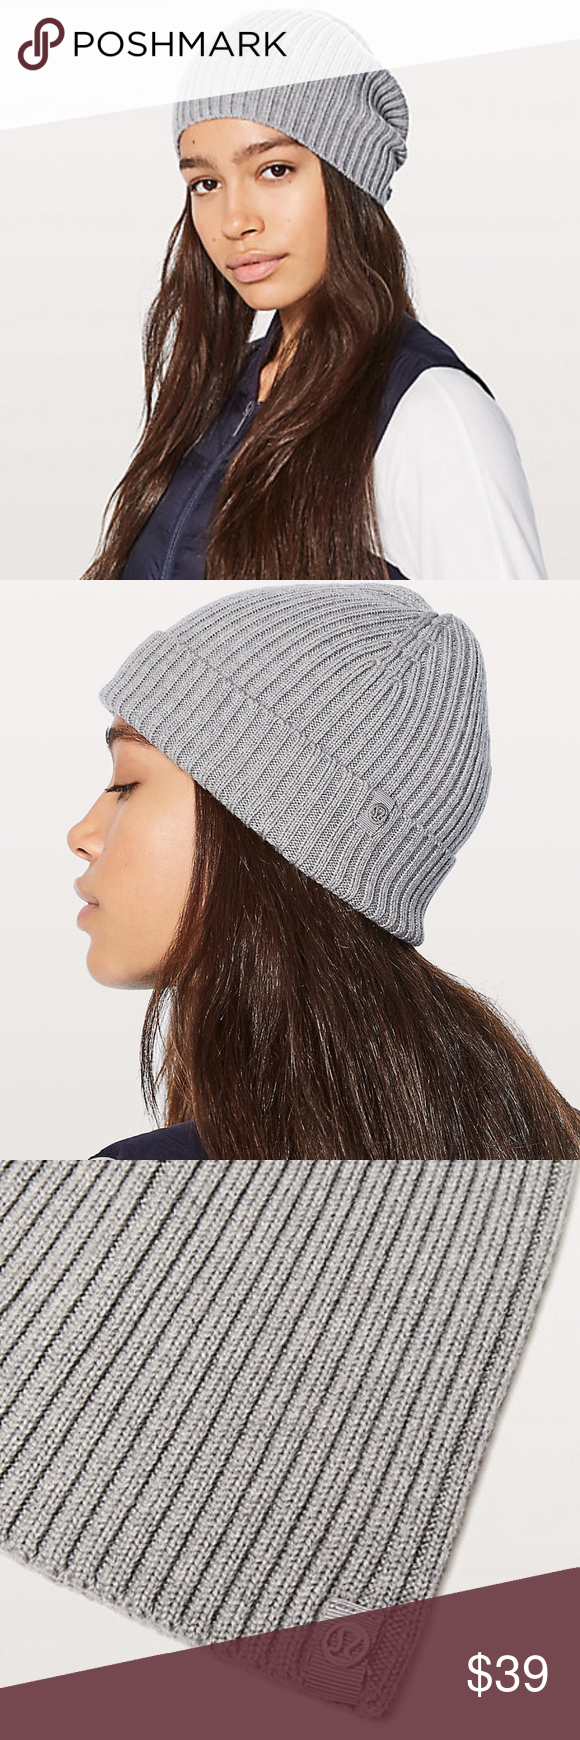 7e2d613a1cd NWT Lululemon Merino Wool Be Cozy Toque This toque was designed to give you  extra warmth